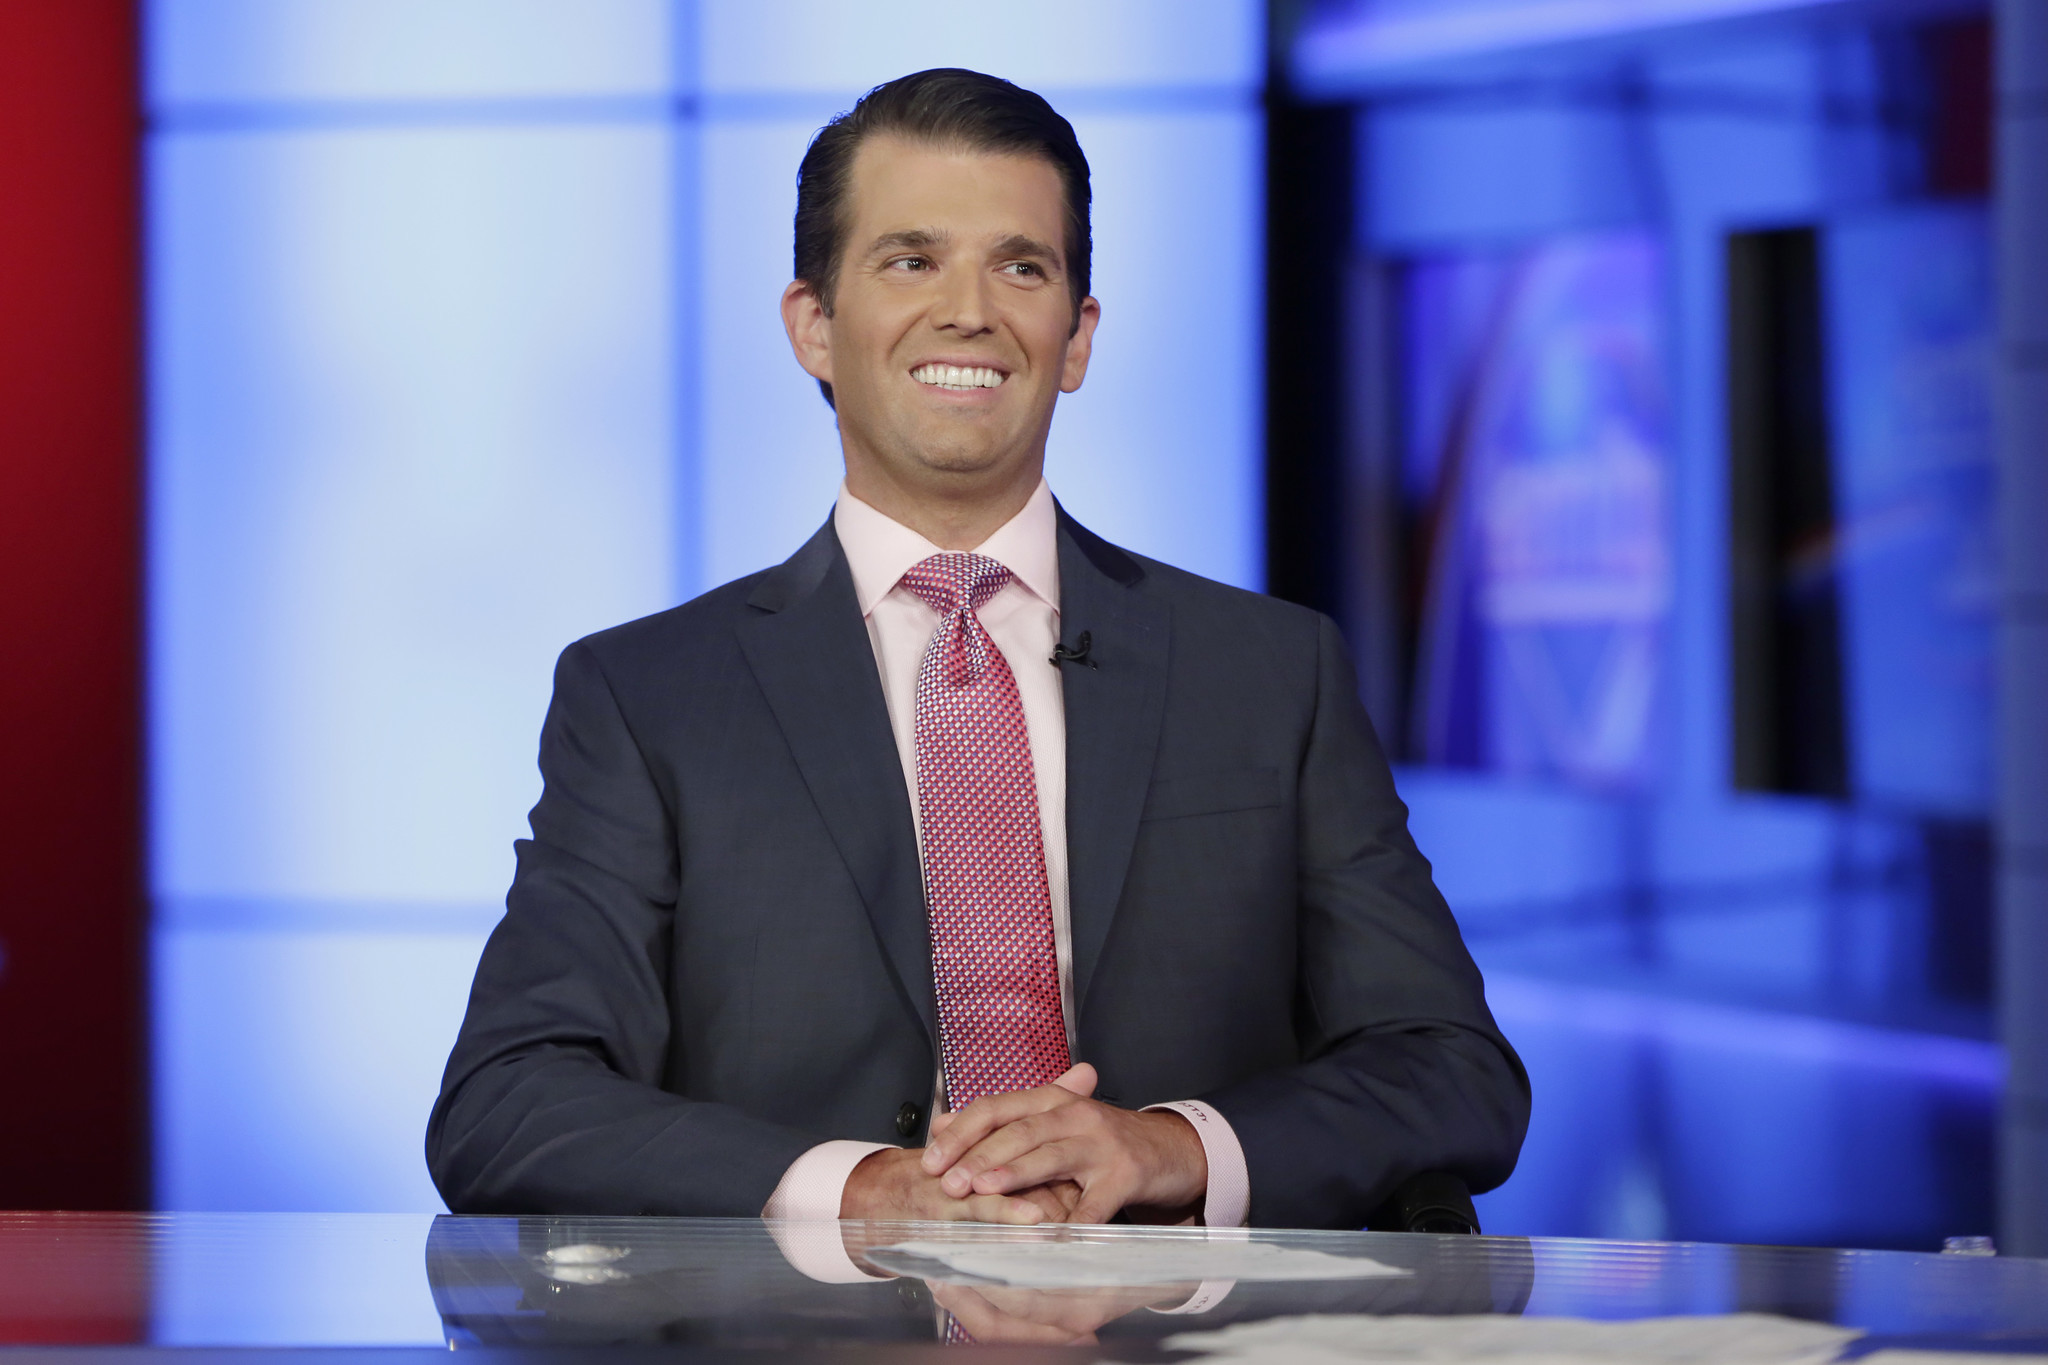 Charles Krauthammer: Trump Jr. Incompetent, But It Was Collusion